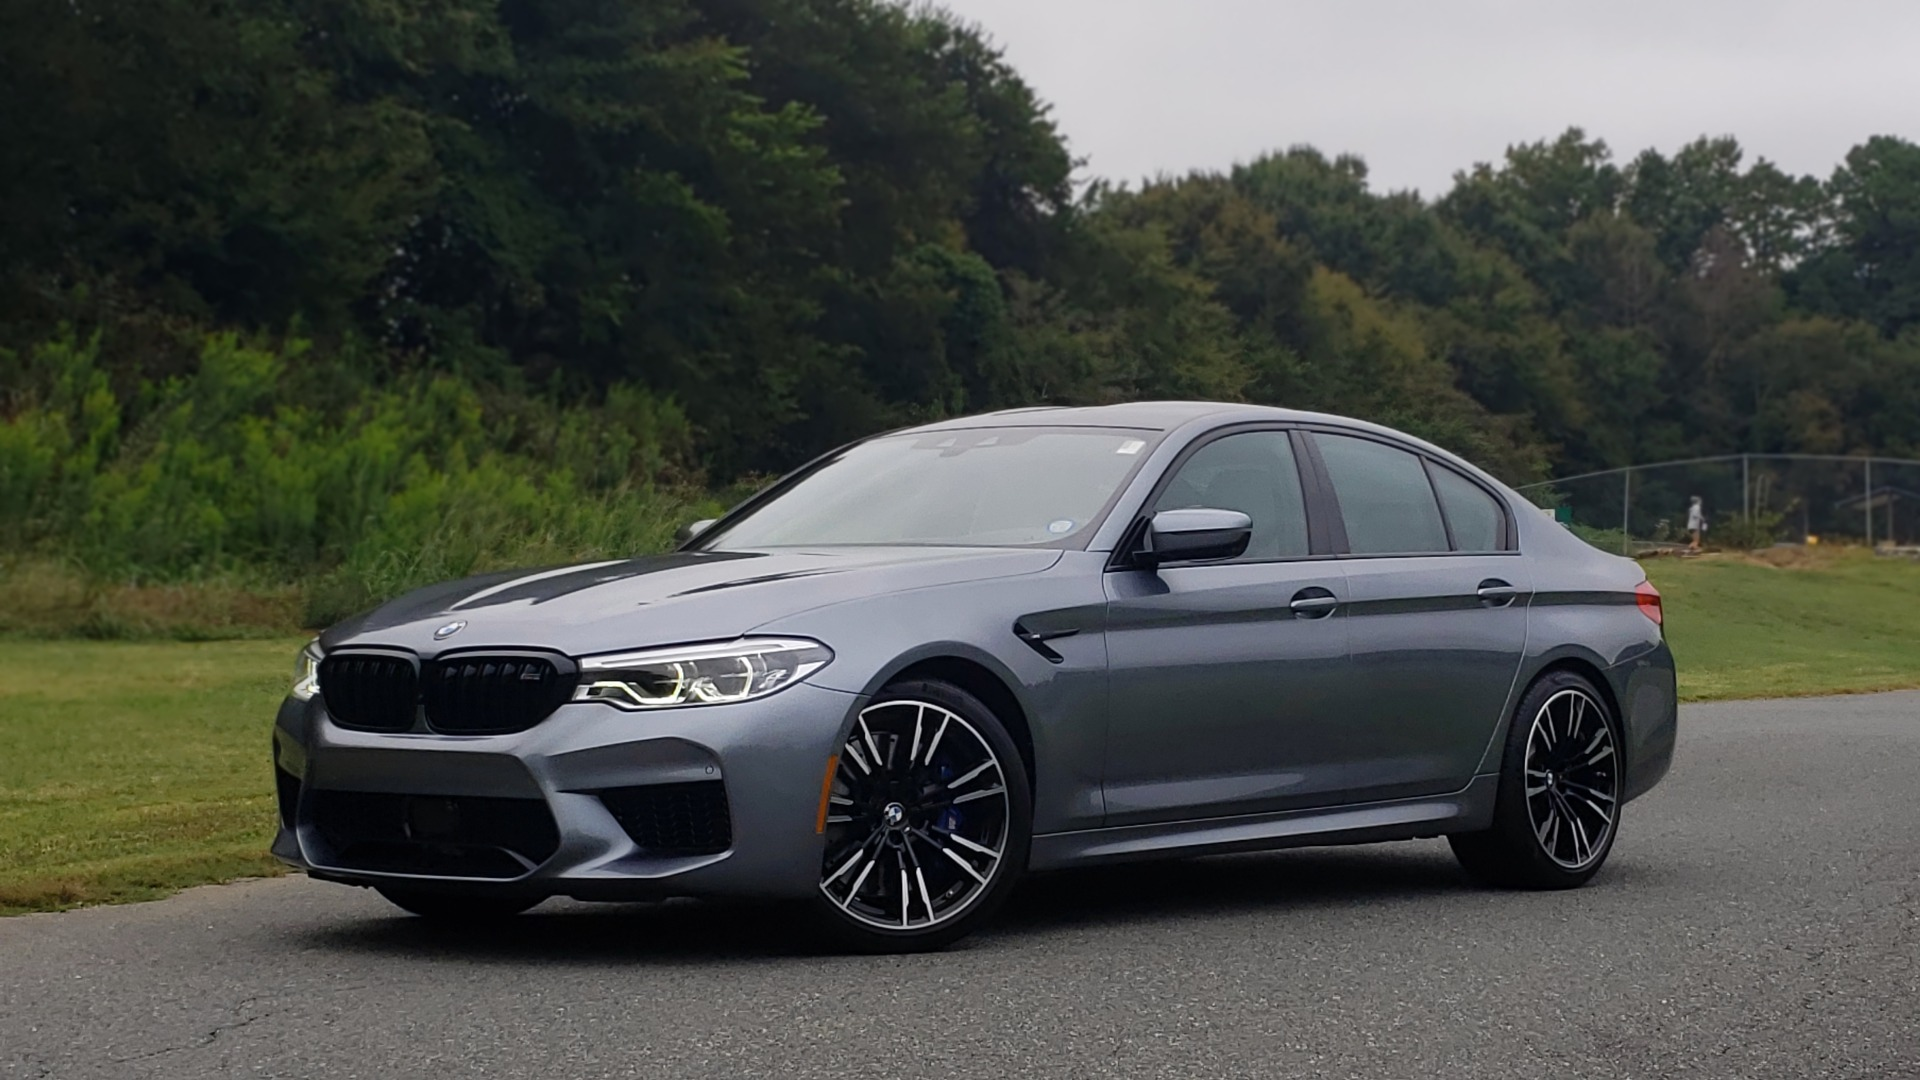 Used 2019 BMW M5 EXEC PKG / DRVR ASST PLUS / B&W SOUND / NAV / REARVIEW for sale Sold at Formula Imports in Charlotte NC 28227 1